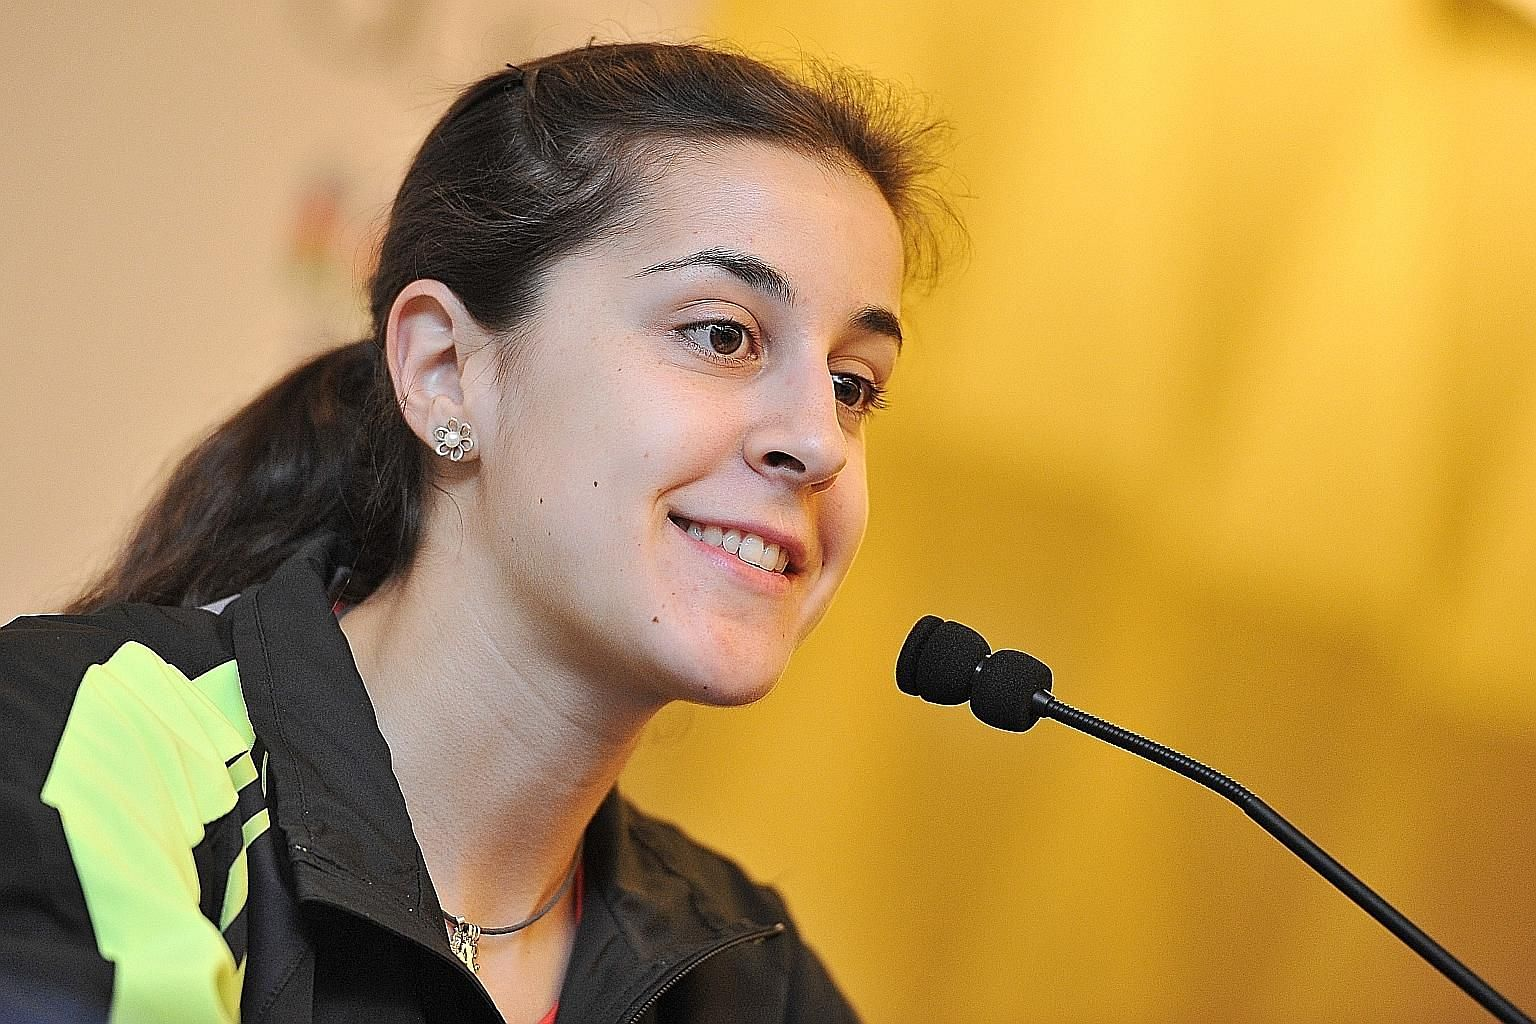 """With the OUE Singapore Open beginning today, world No. 1 Carolina Marin (above) of Spain said the most in-form player is Thailand's Ratchanok Intanon, who has won two successive titles in India and Malaysia. But Japan's Nozomi Okuhara declared: """"I ho"""